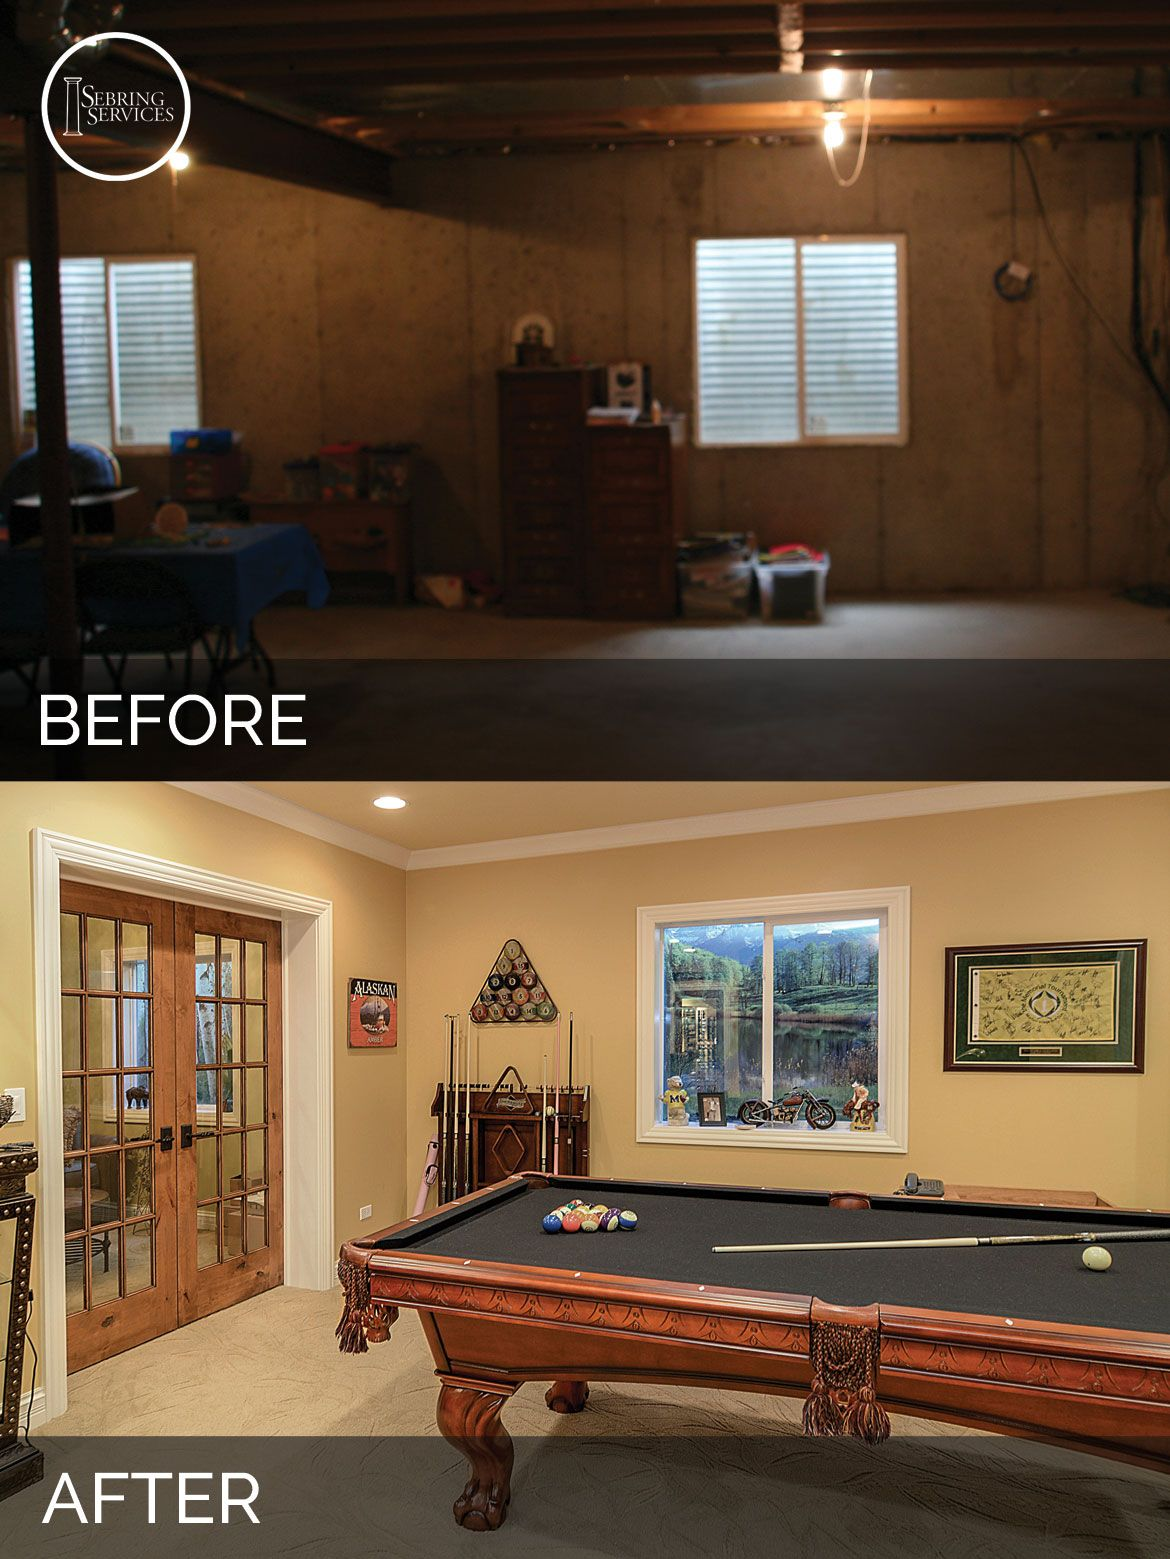 Basement Remodeling Ideas Before And After Brian & Danica's Basement Before & After Pictures  Basements